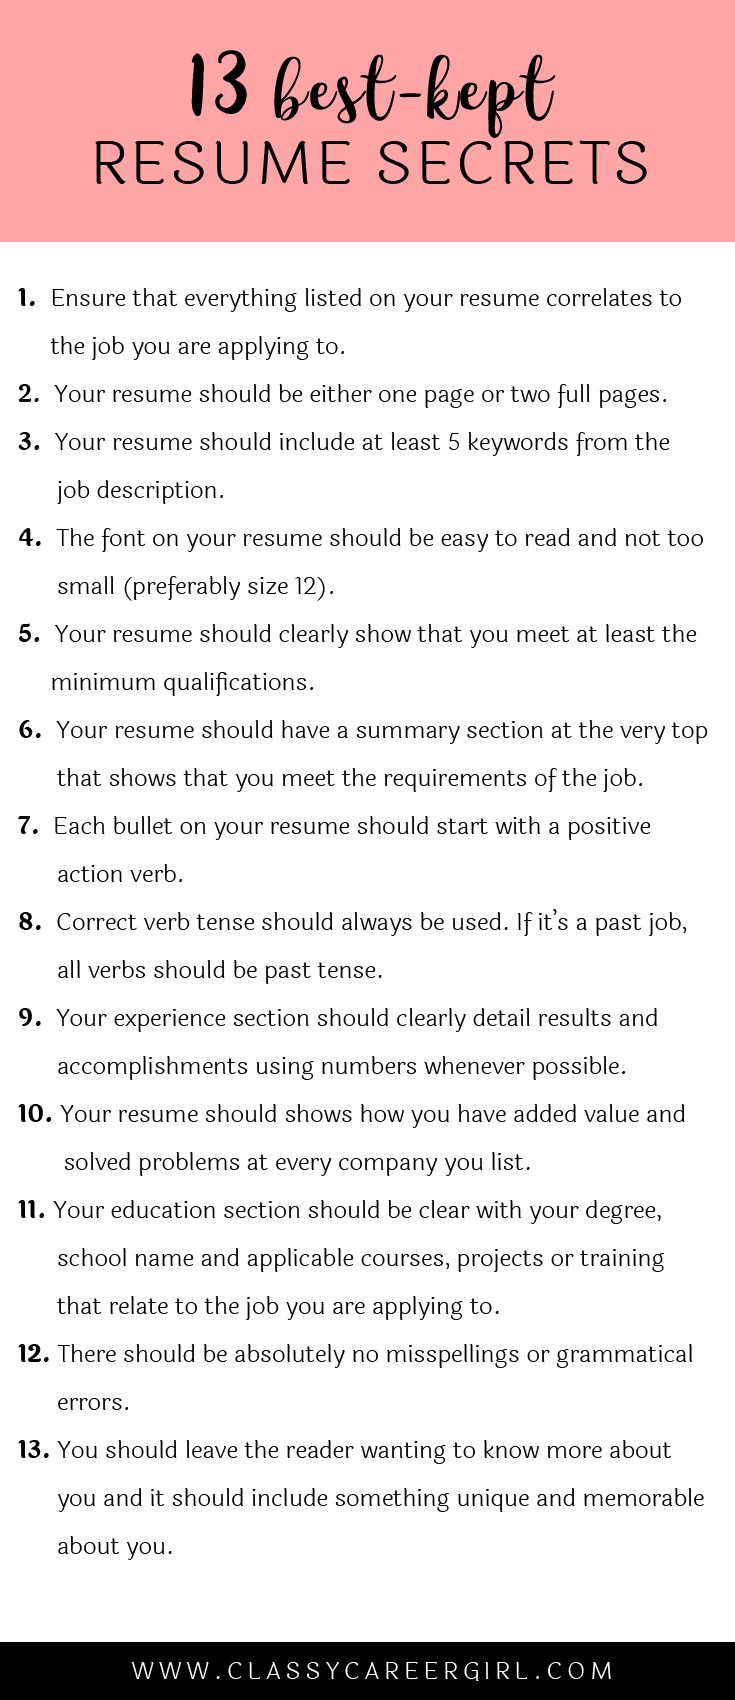 Opposenewapstandardsus  Outstanding  Ideas About Resume On Pinterest  Cv Format Resume Cv And  With Foxy Some Hiring Managers Will Toss Your Resume Out If You Dont Know These  With Agreeable Manager Resumes Also Sample Resume For High School Graduate In Addition Resume Stay At Home Mom And Free Basic Resume Templates Download As Well As How To Write A Killer Resume Additionally Outstanding Resumes From Pinterestcom With Opposenewapstandardsus  Foxy  Ideas About Resume On Pinterest  Cv Format Resume Cv And  With Agreeable Some Hiring Managers Will Toss Your Resume Out If You Dont Know These  And Outstanding Manager Resumes Also Sample Resume For High School Graduate In Addition Resume Stay At Home Mom From Pinterestcom